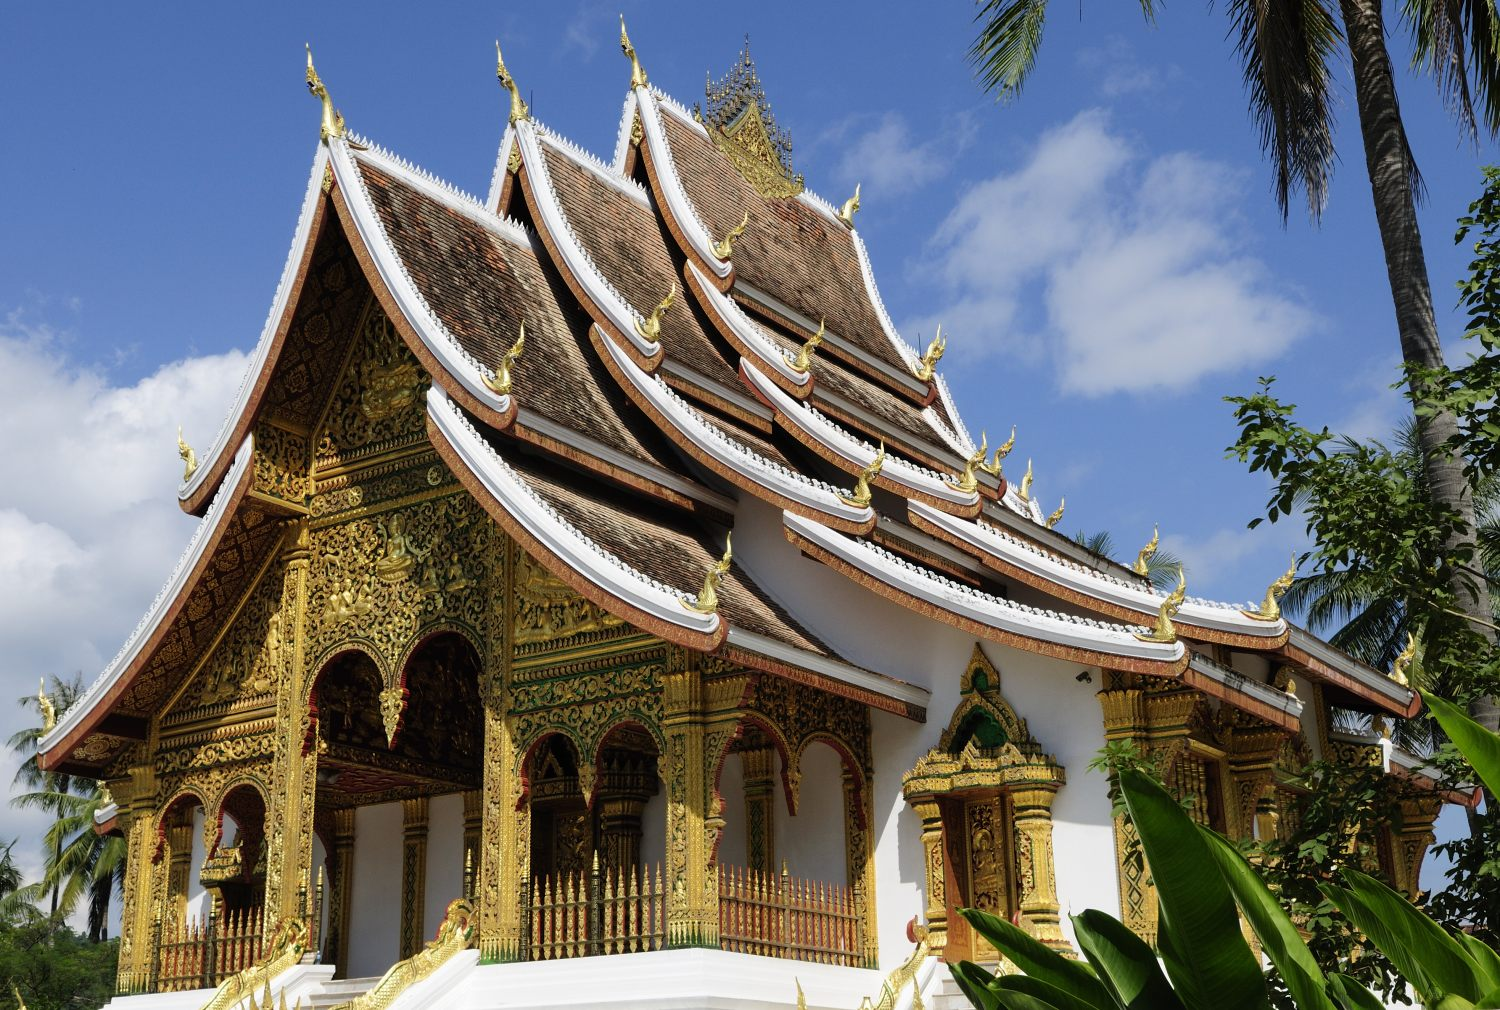 Ancien Palais Royal (Haw Pha Bang), Luang Prabang, Laos